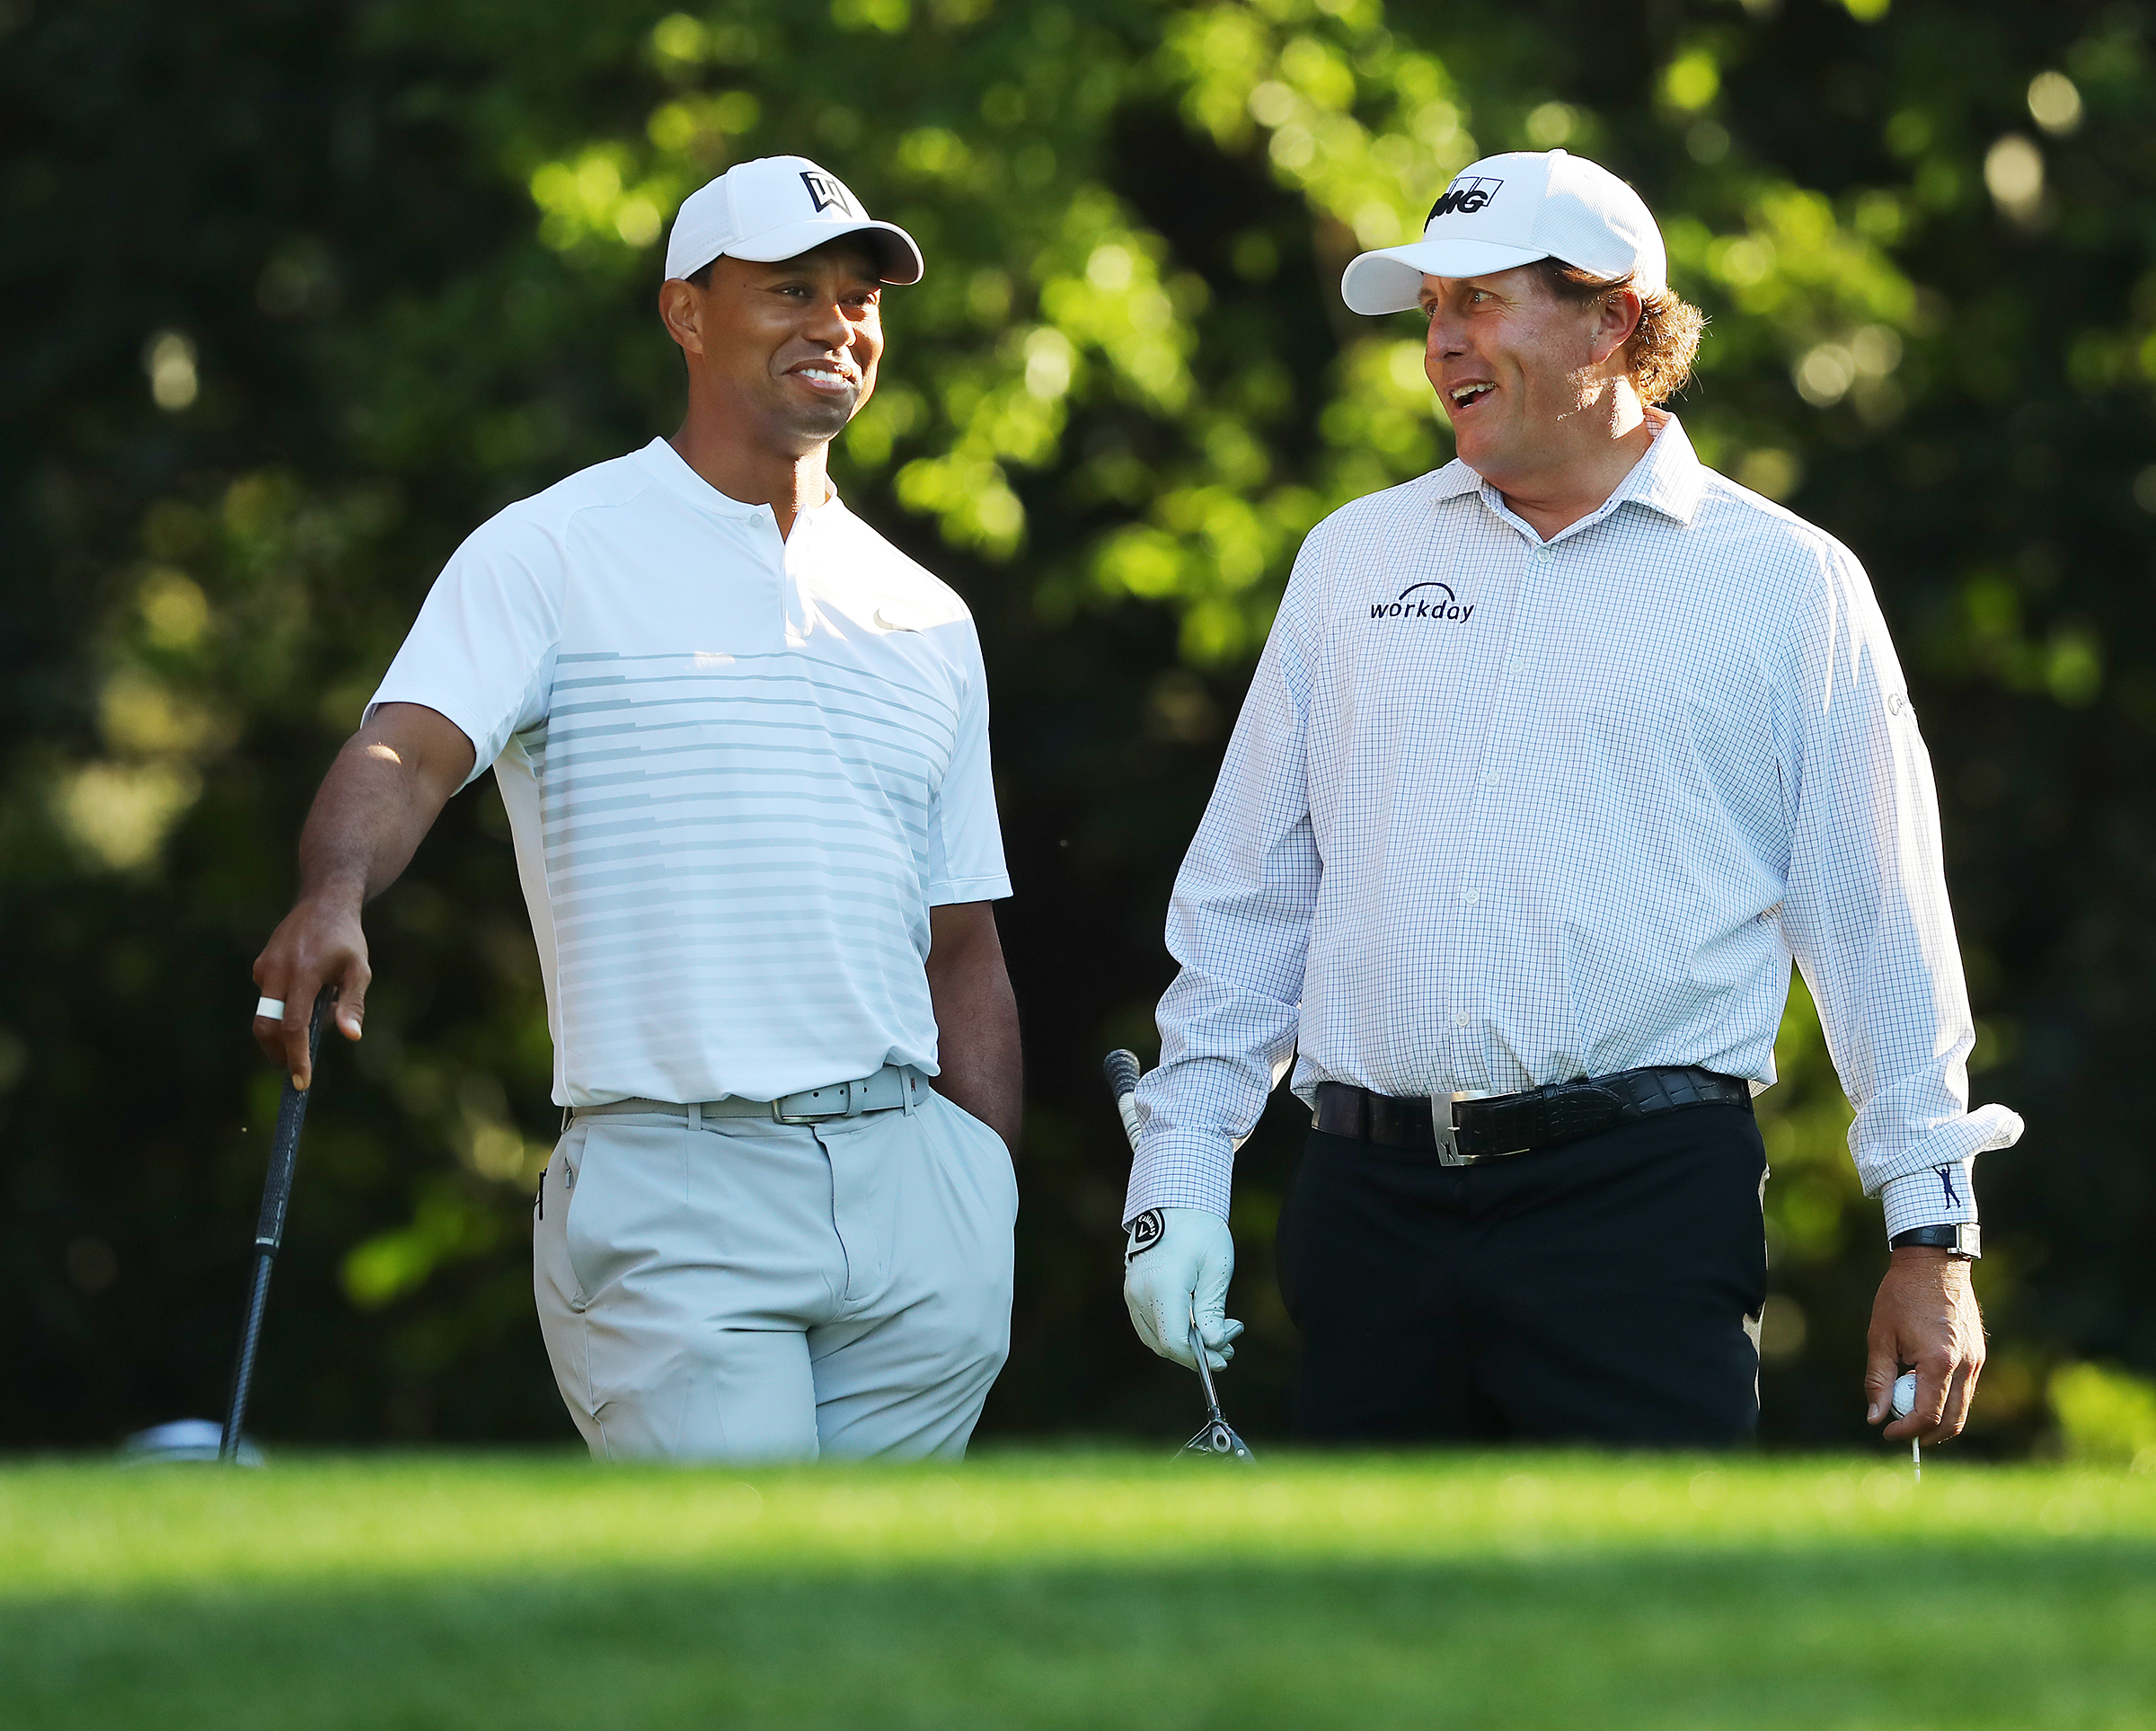 Woods and Mickelson during a practice round at Augusta earlier this year. Image: PA Images